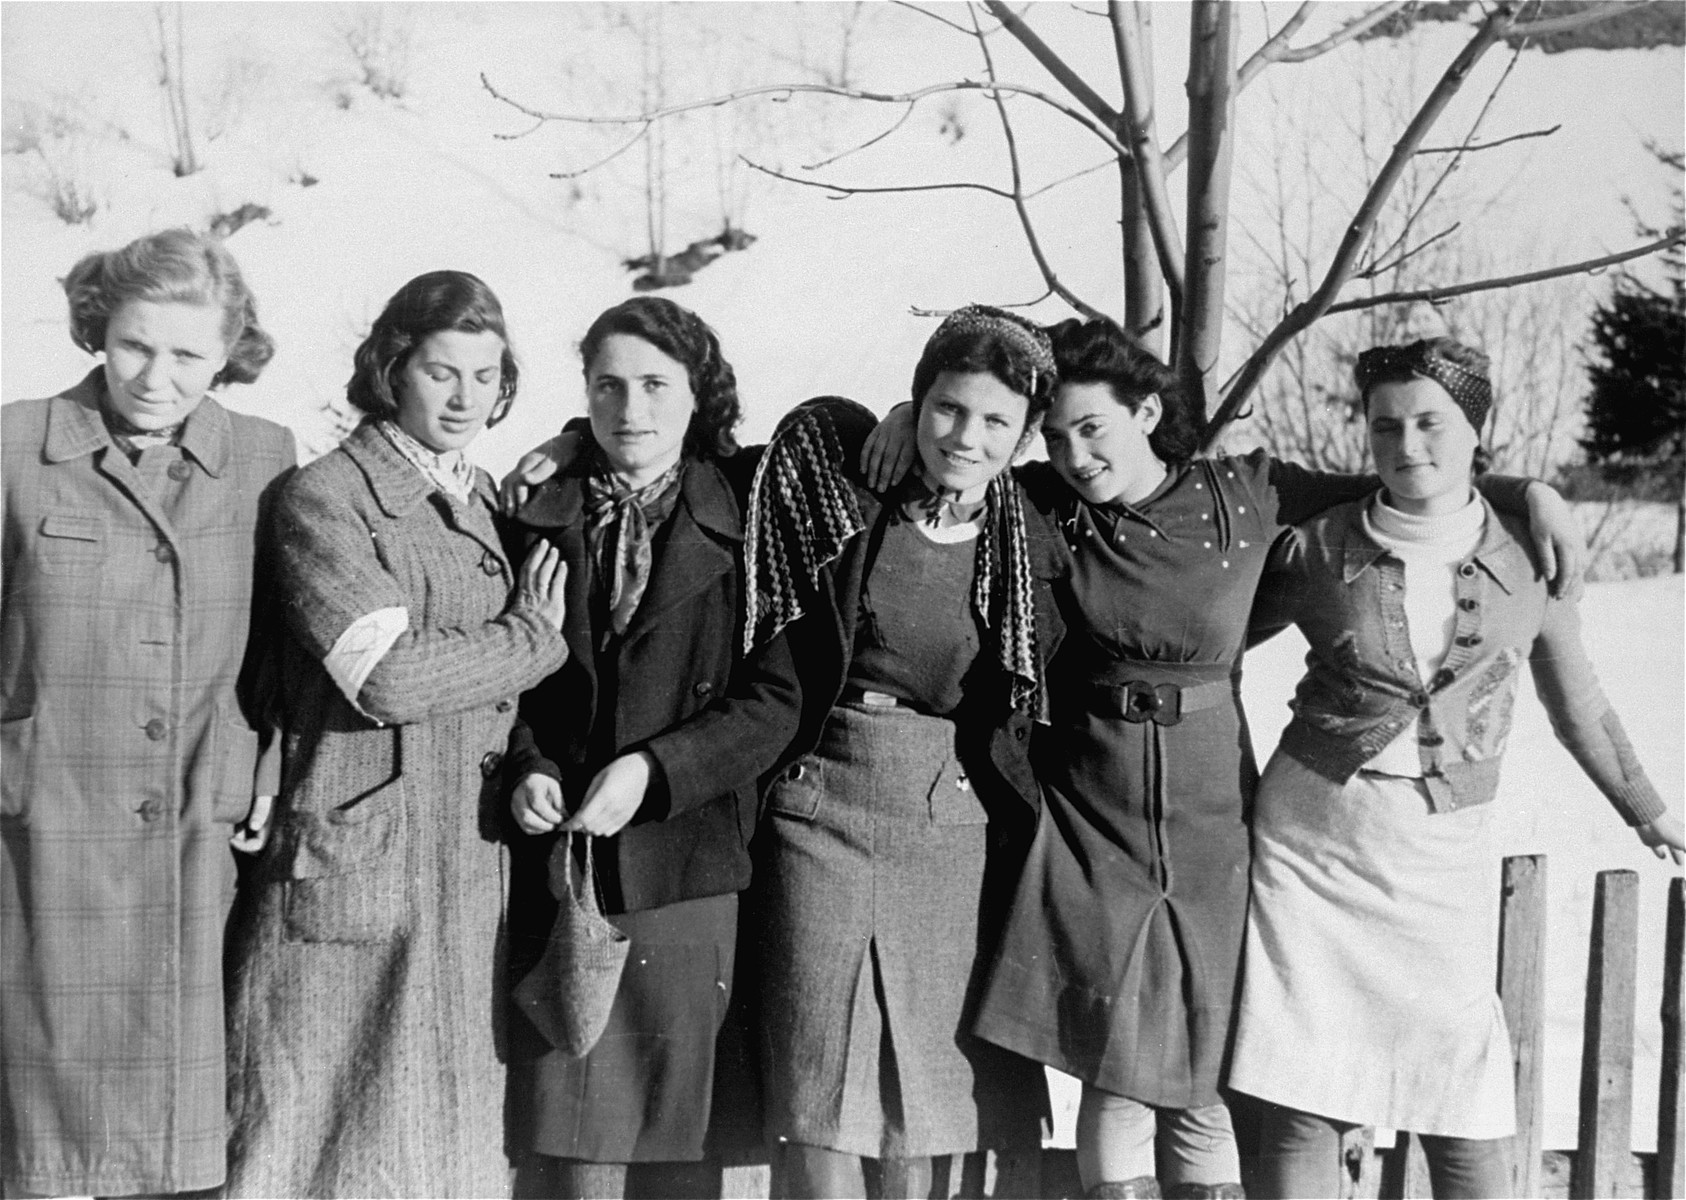 Local Jewish women, some wearing armbands, pose for a photo taken by Jewish conscripts in the Hungarian Labor Service.